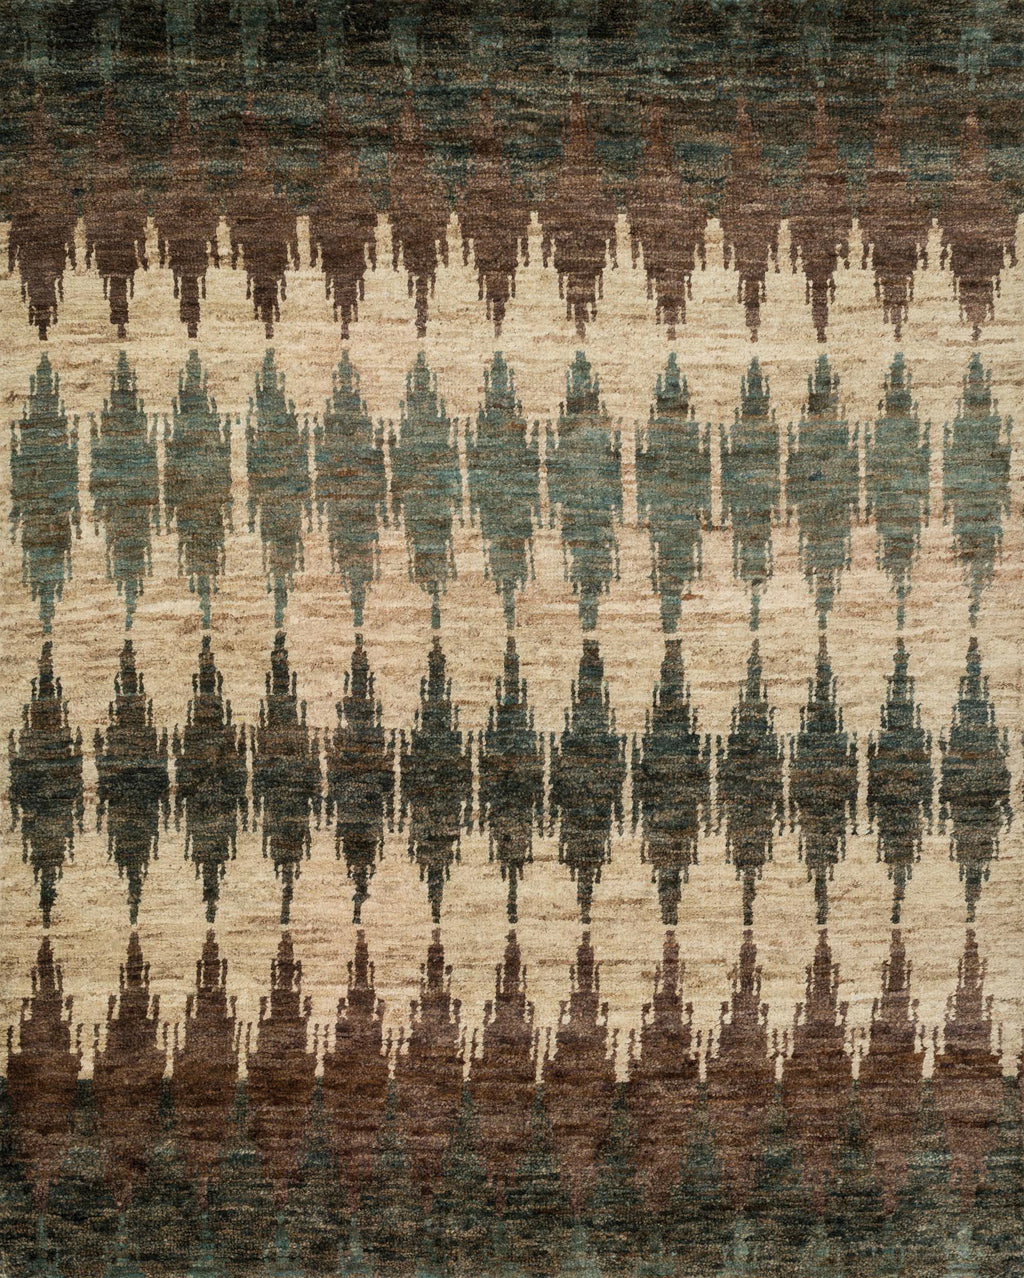 Green & Brown Hand-Knotted Jute Area Rug - Xavier - Upper Earth